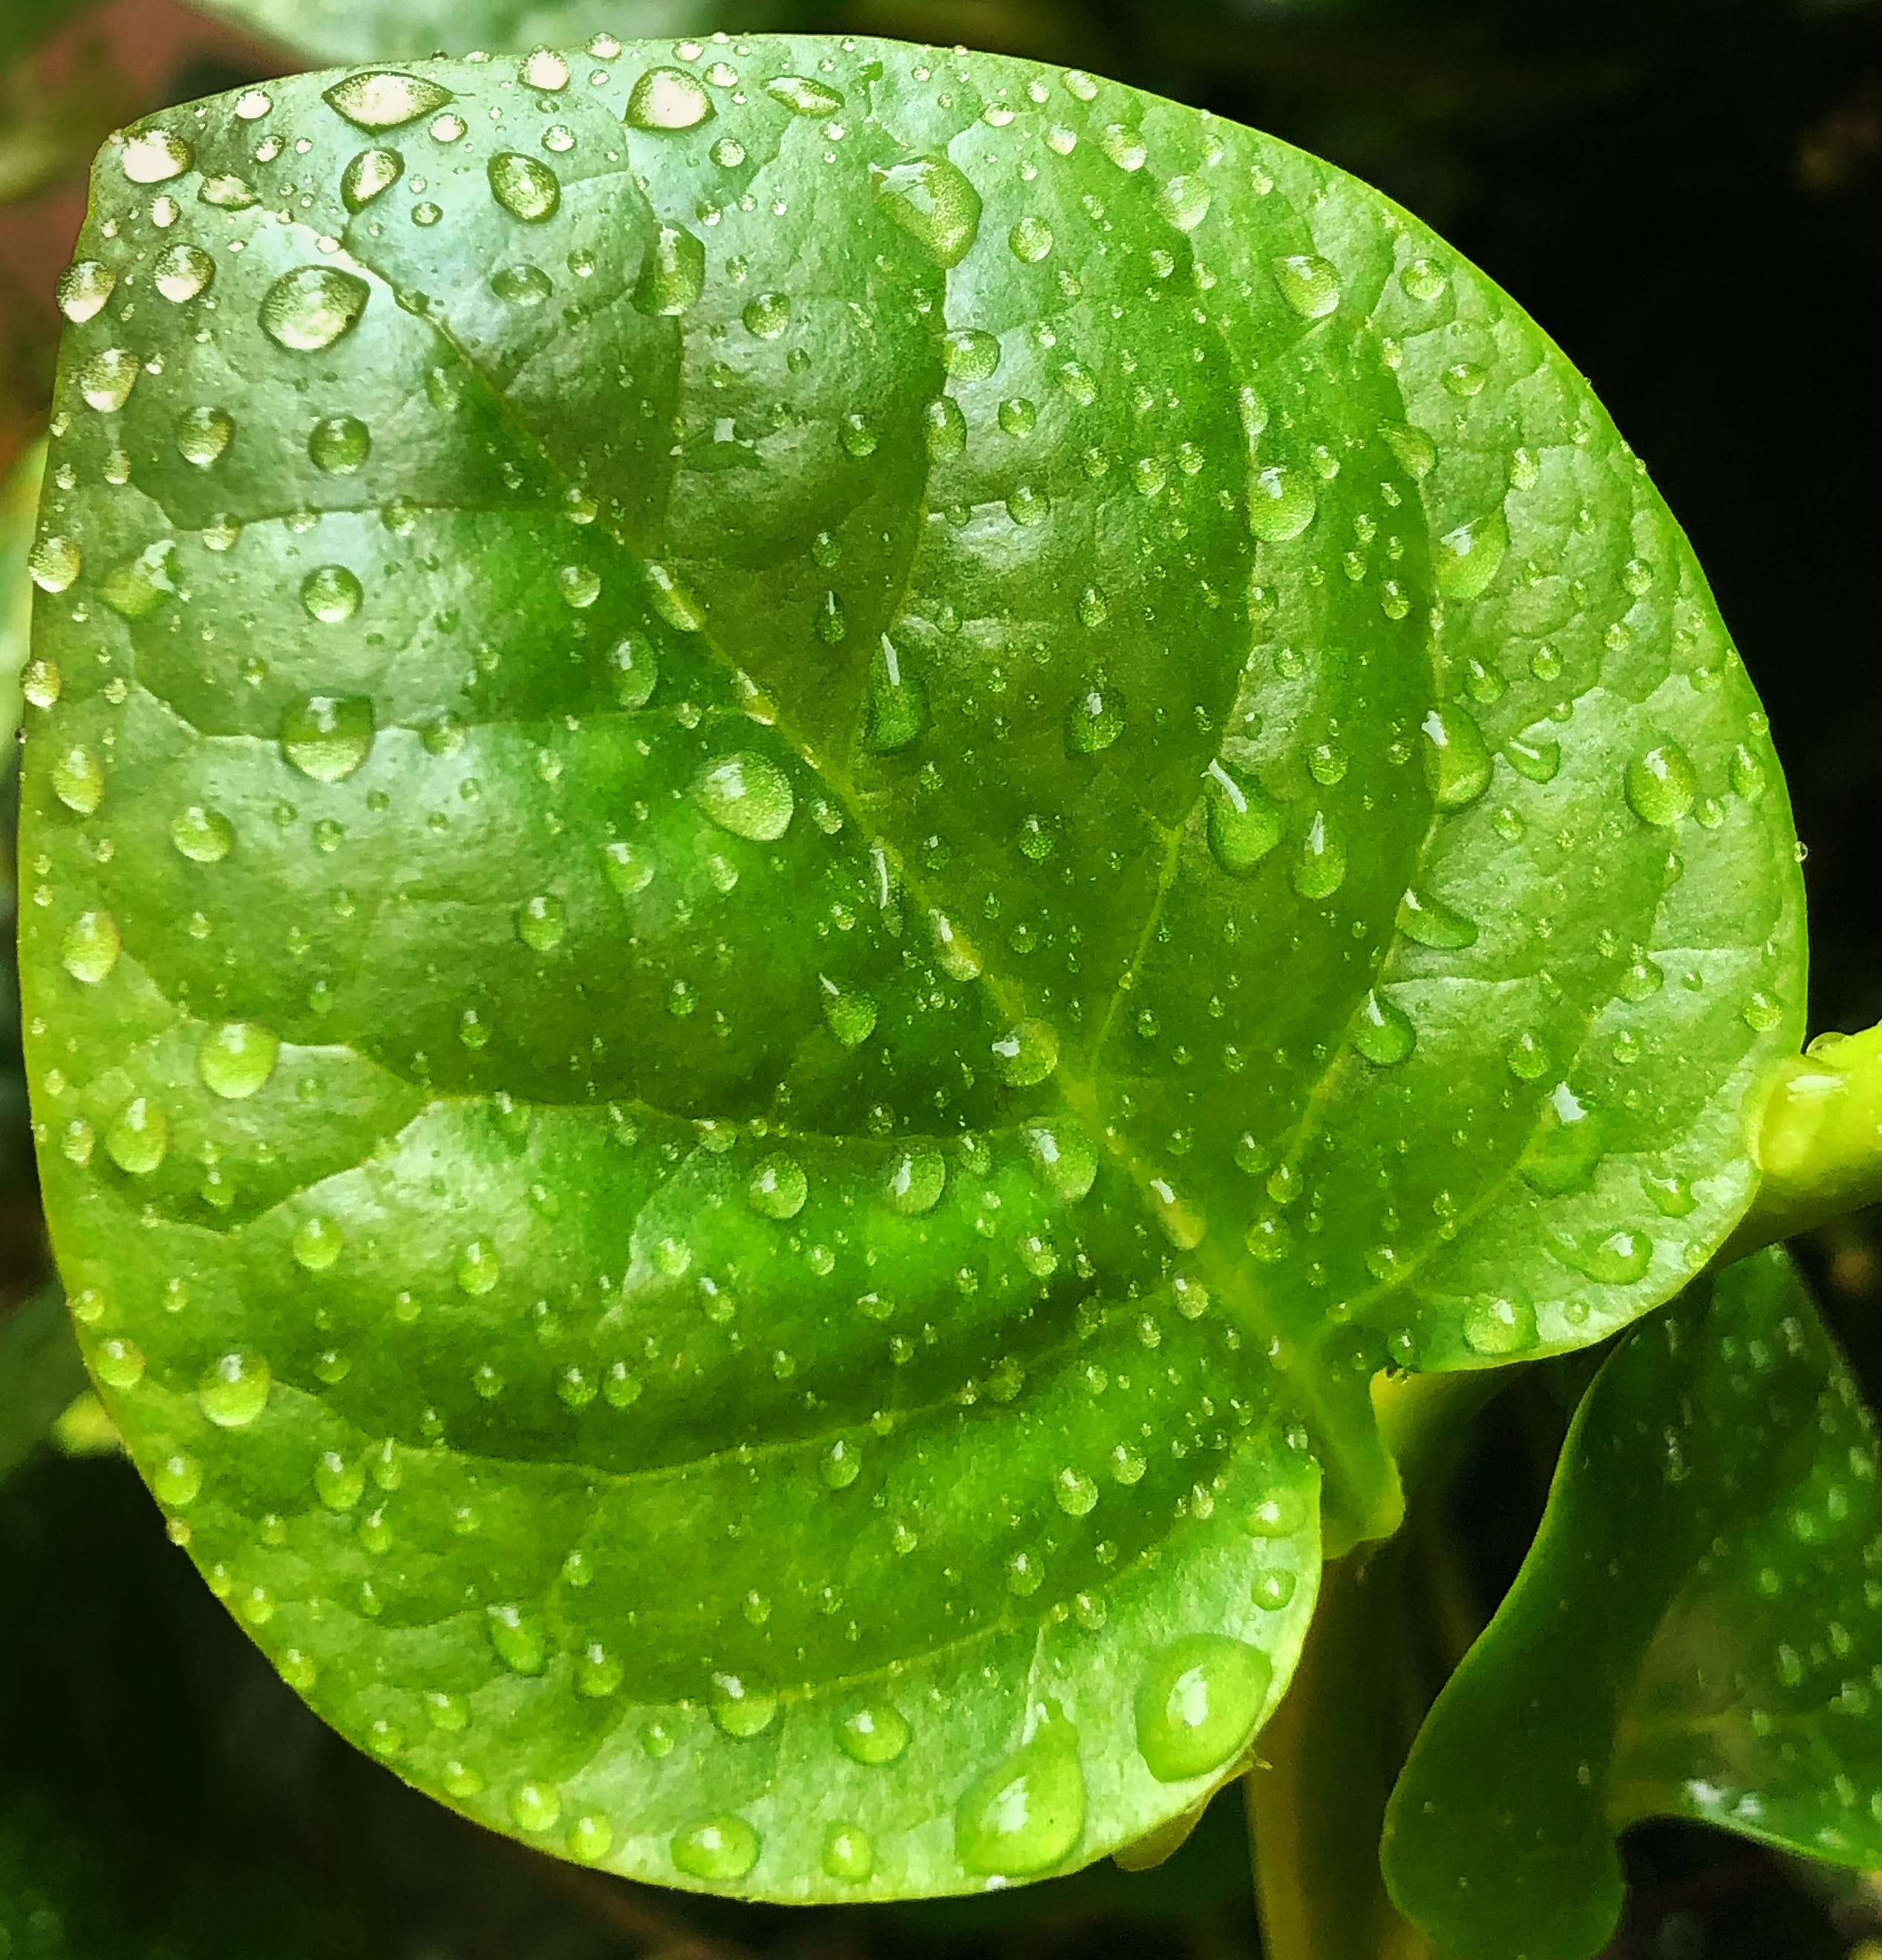 Free stock photo of green leaf, raindrops